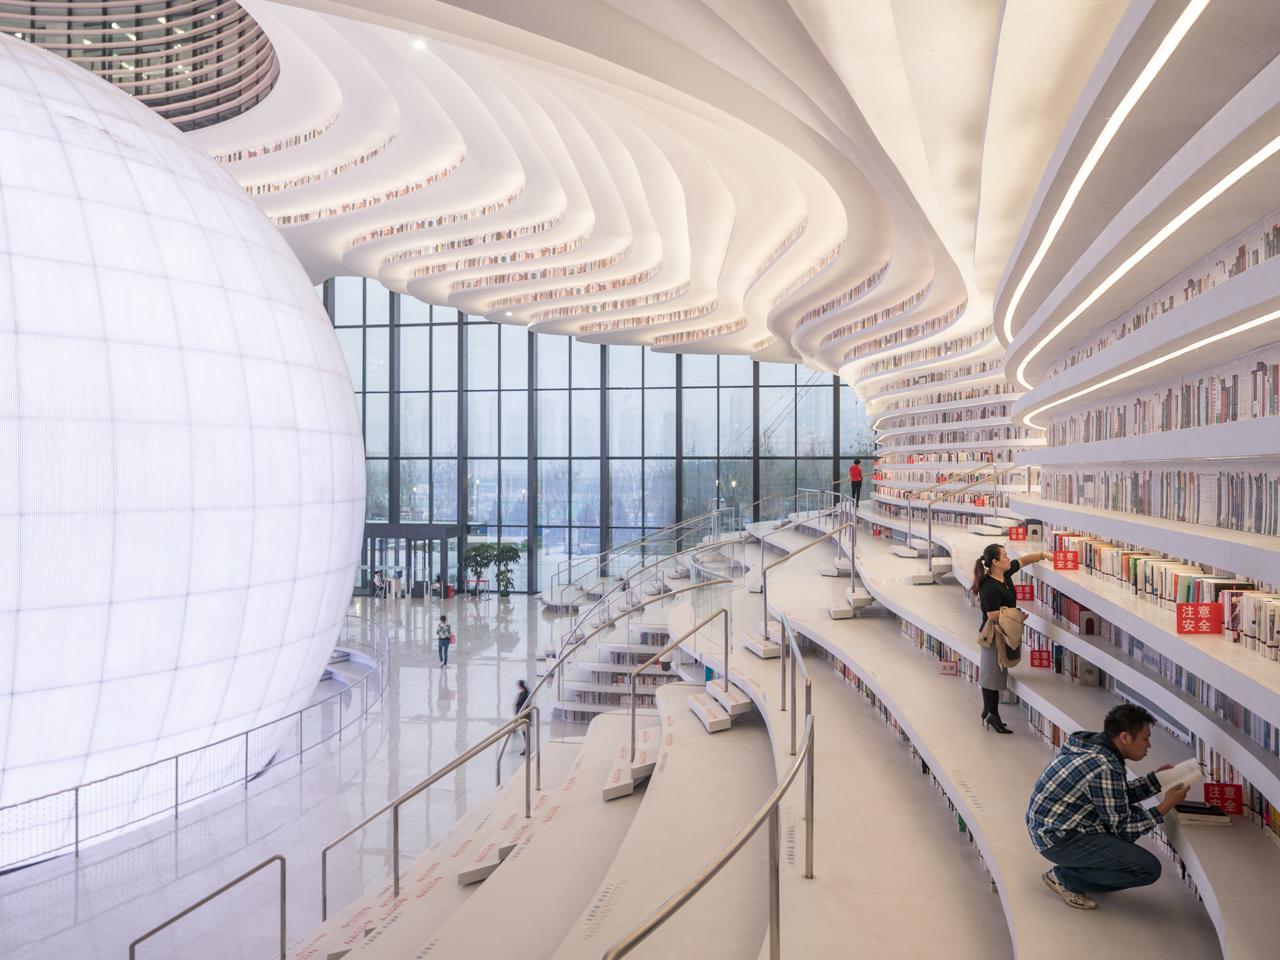 Tianjin Binhai Library named by the BBC and Architectural Digest as one of the best buildings of 2017